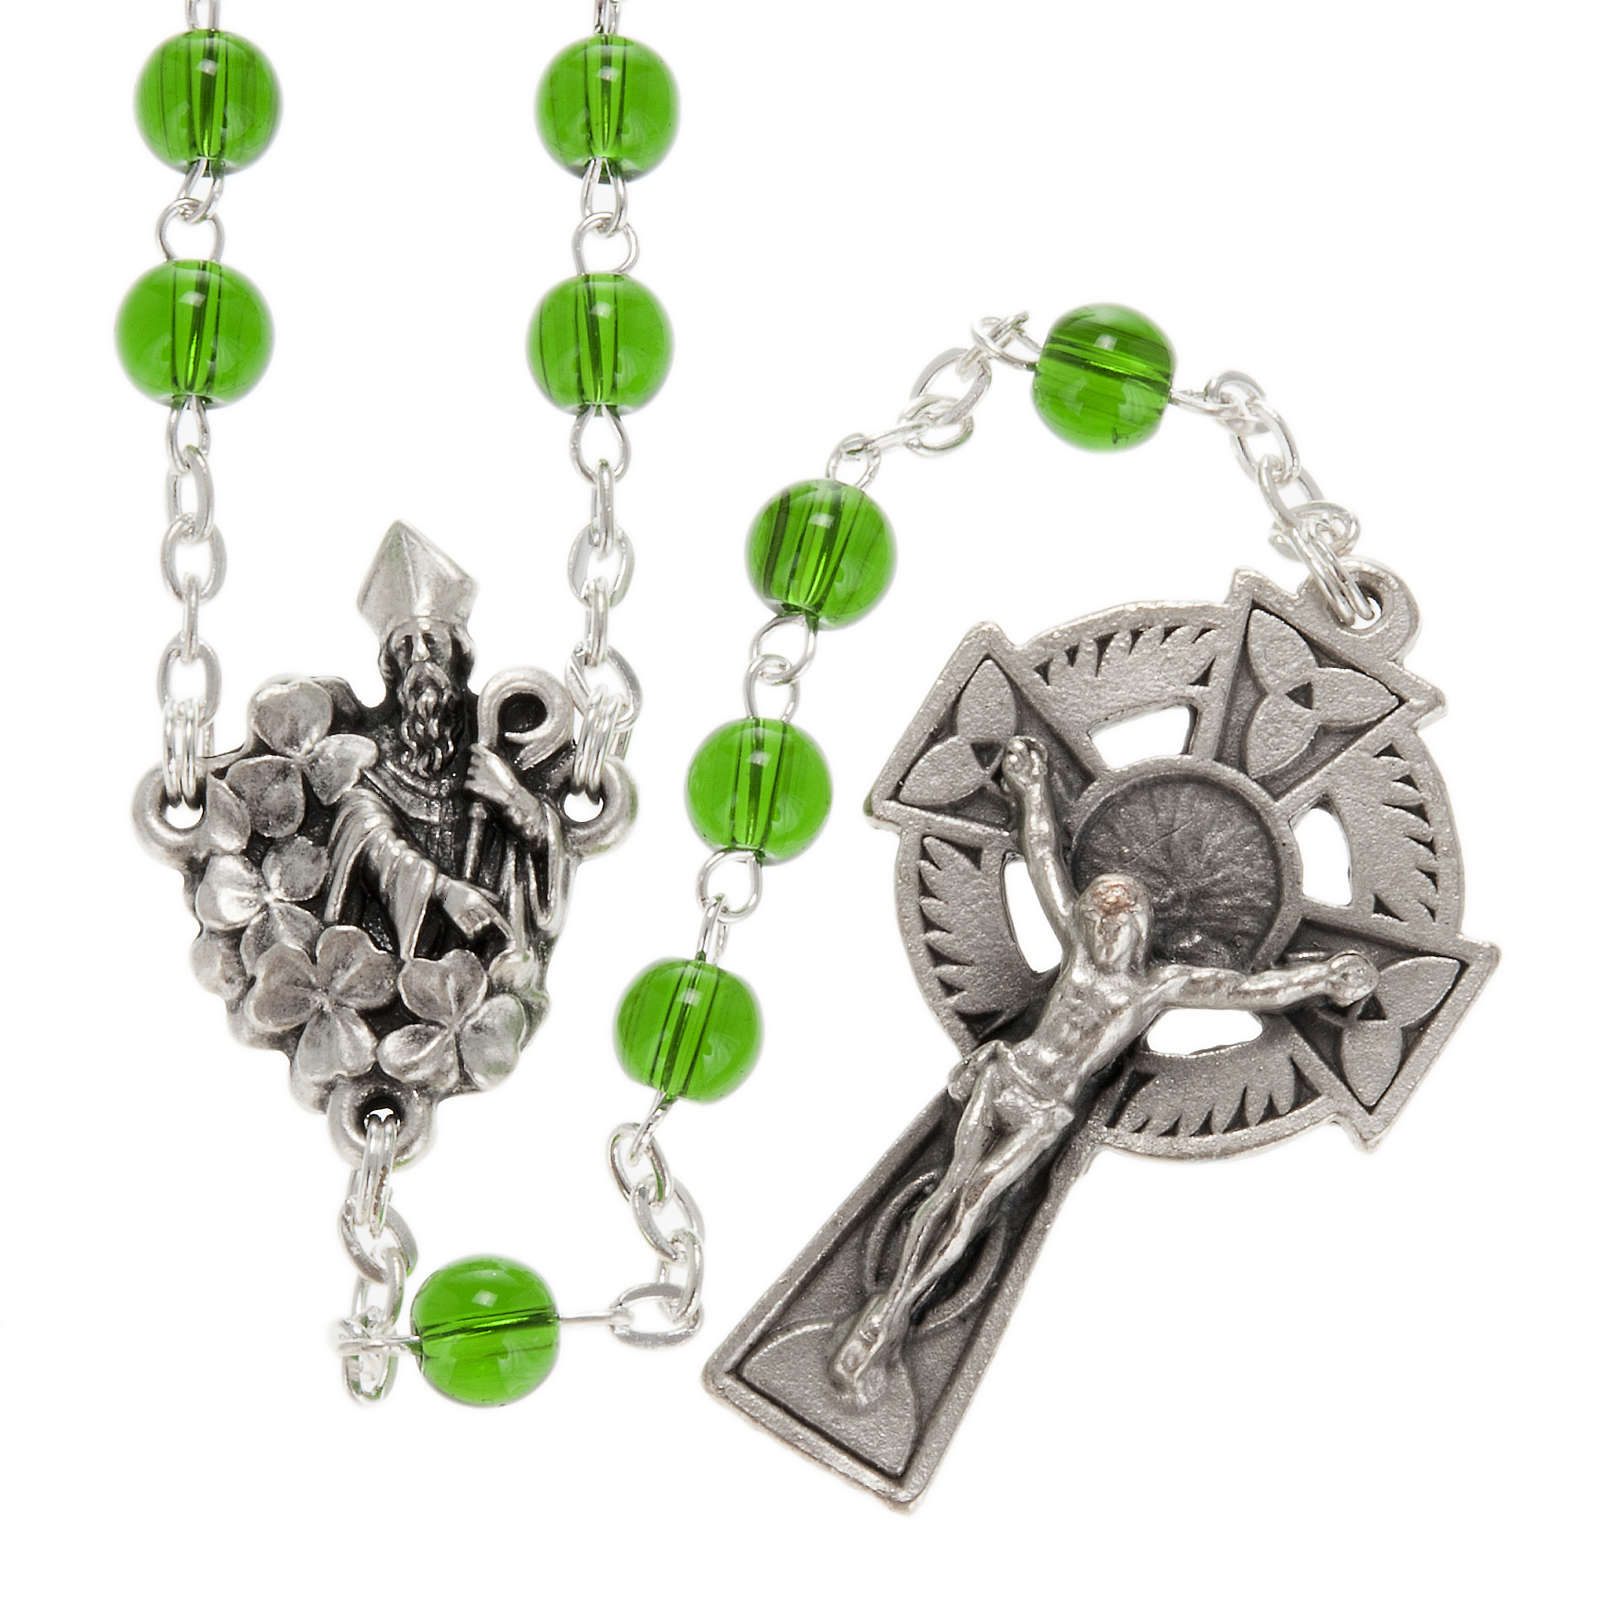 Ghirelli rosary, green glass, St. Patrick 6mm 4